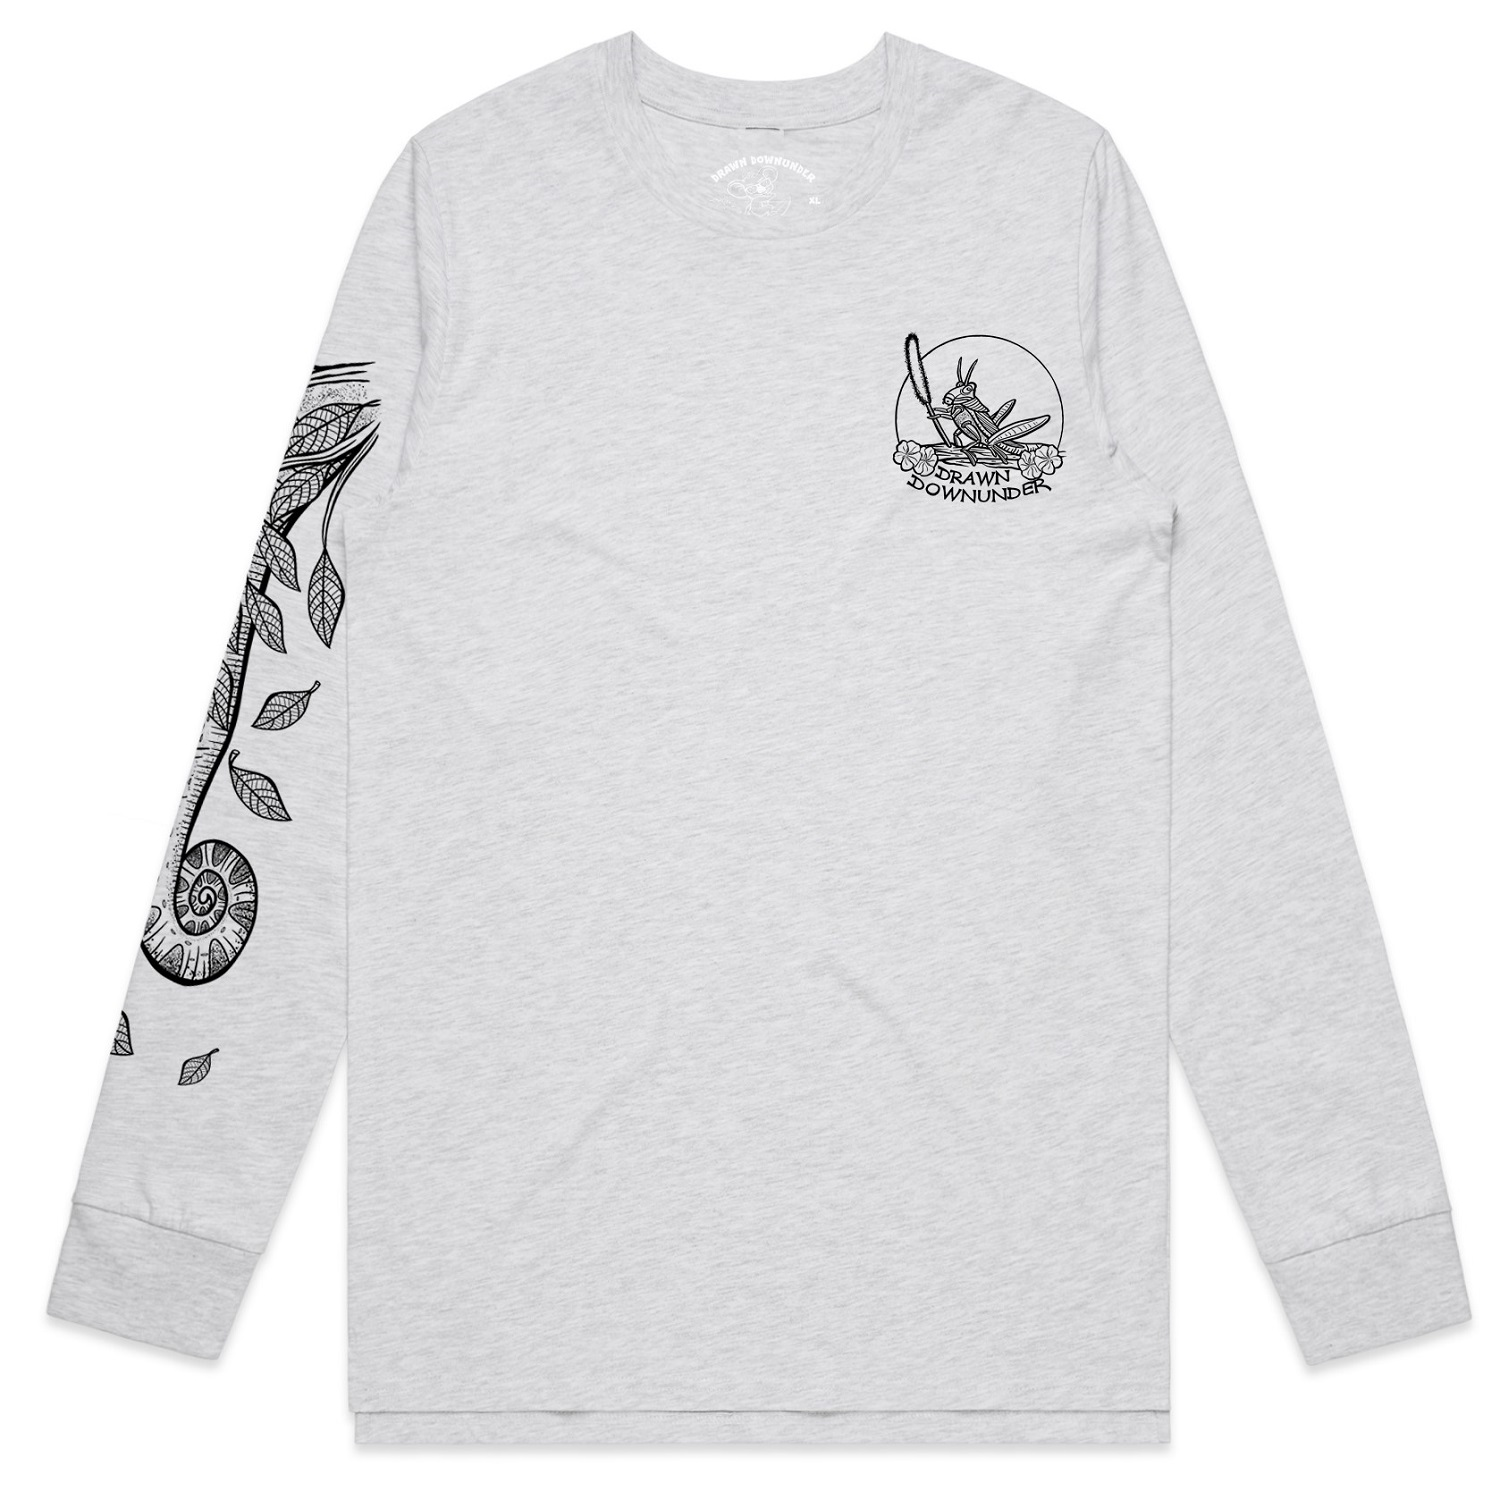 Chameleon Long Sleeve